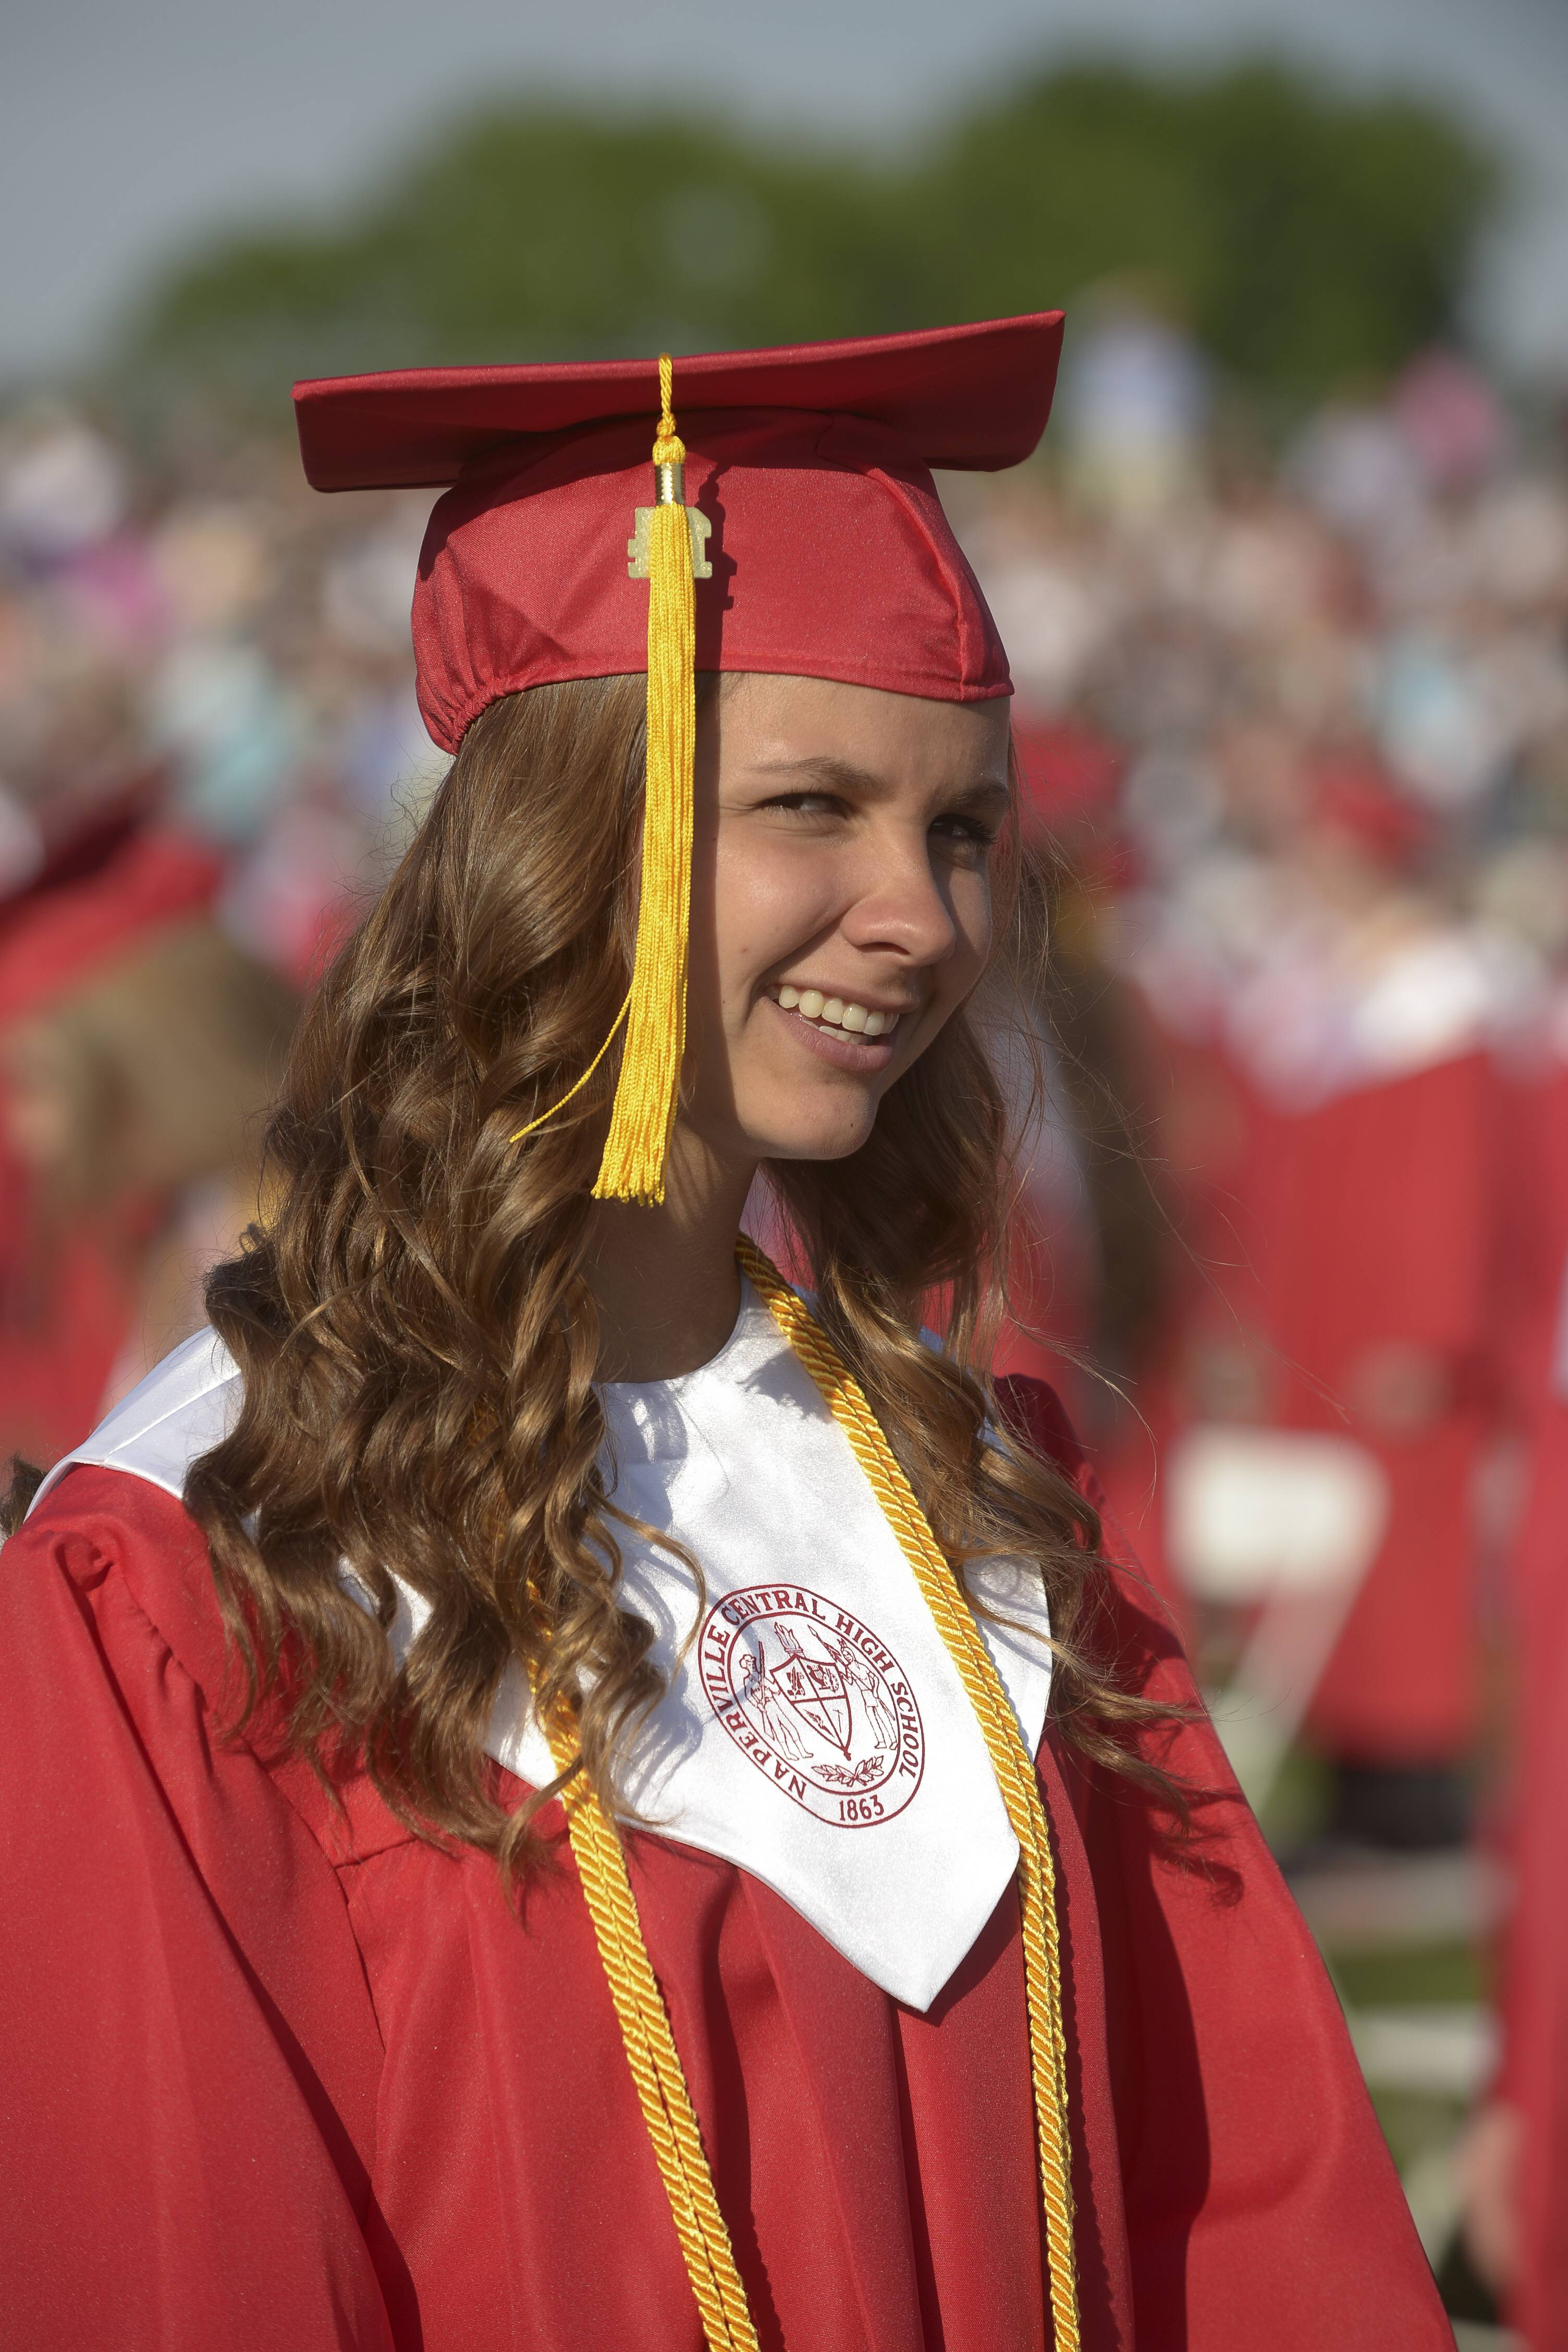 Naperville Central High School held its rain-delayed graduation Wednesday, May 28 at the school's football field.